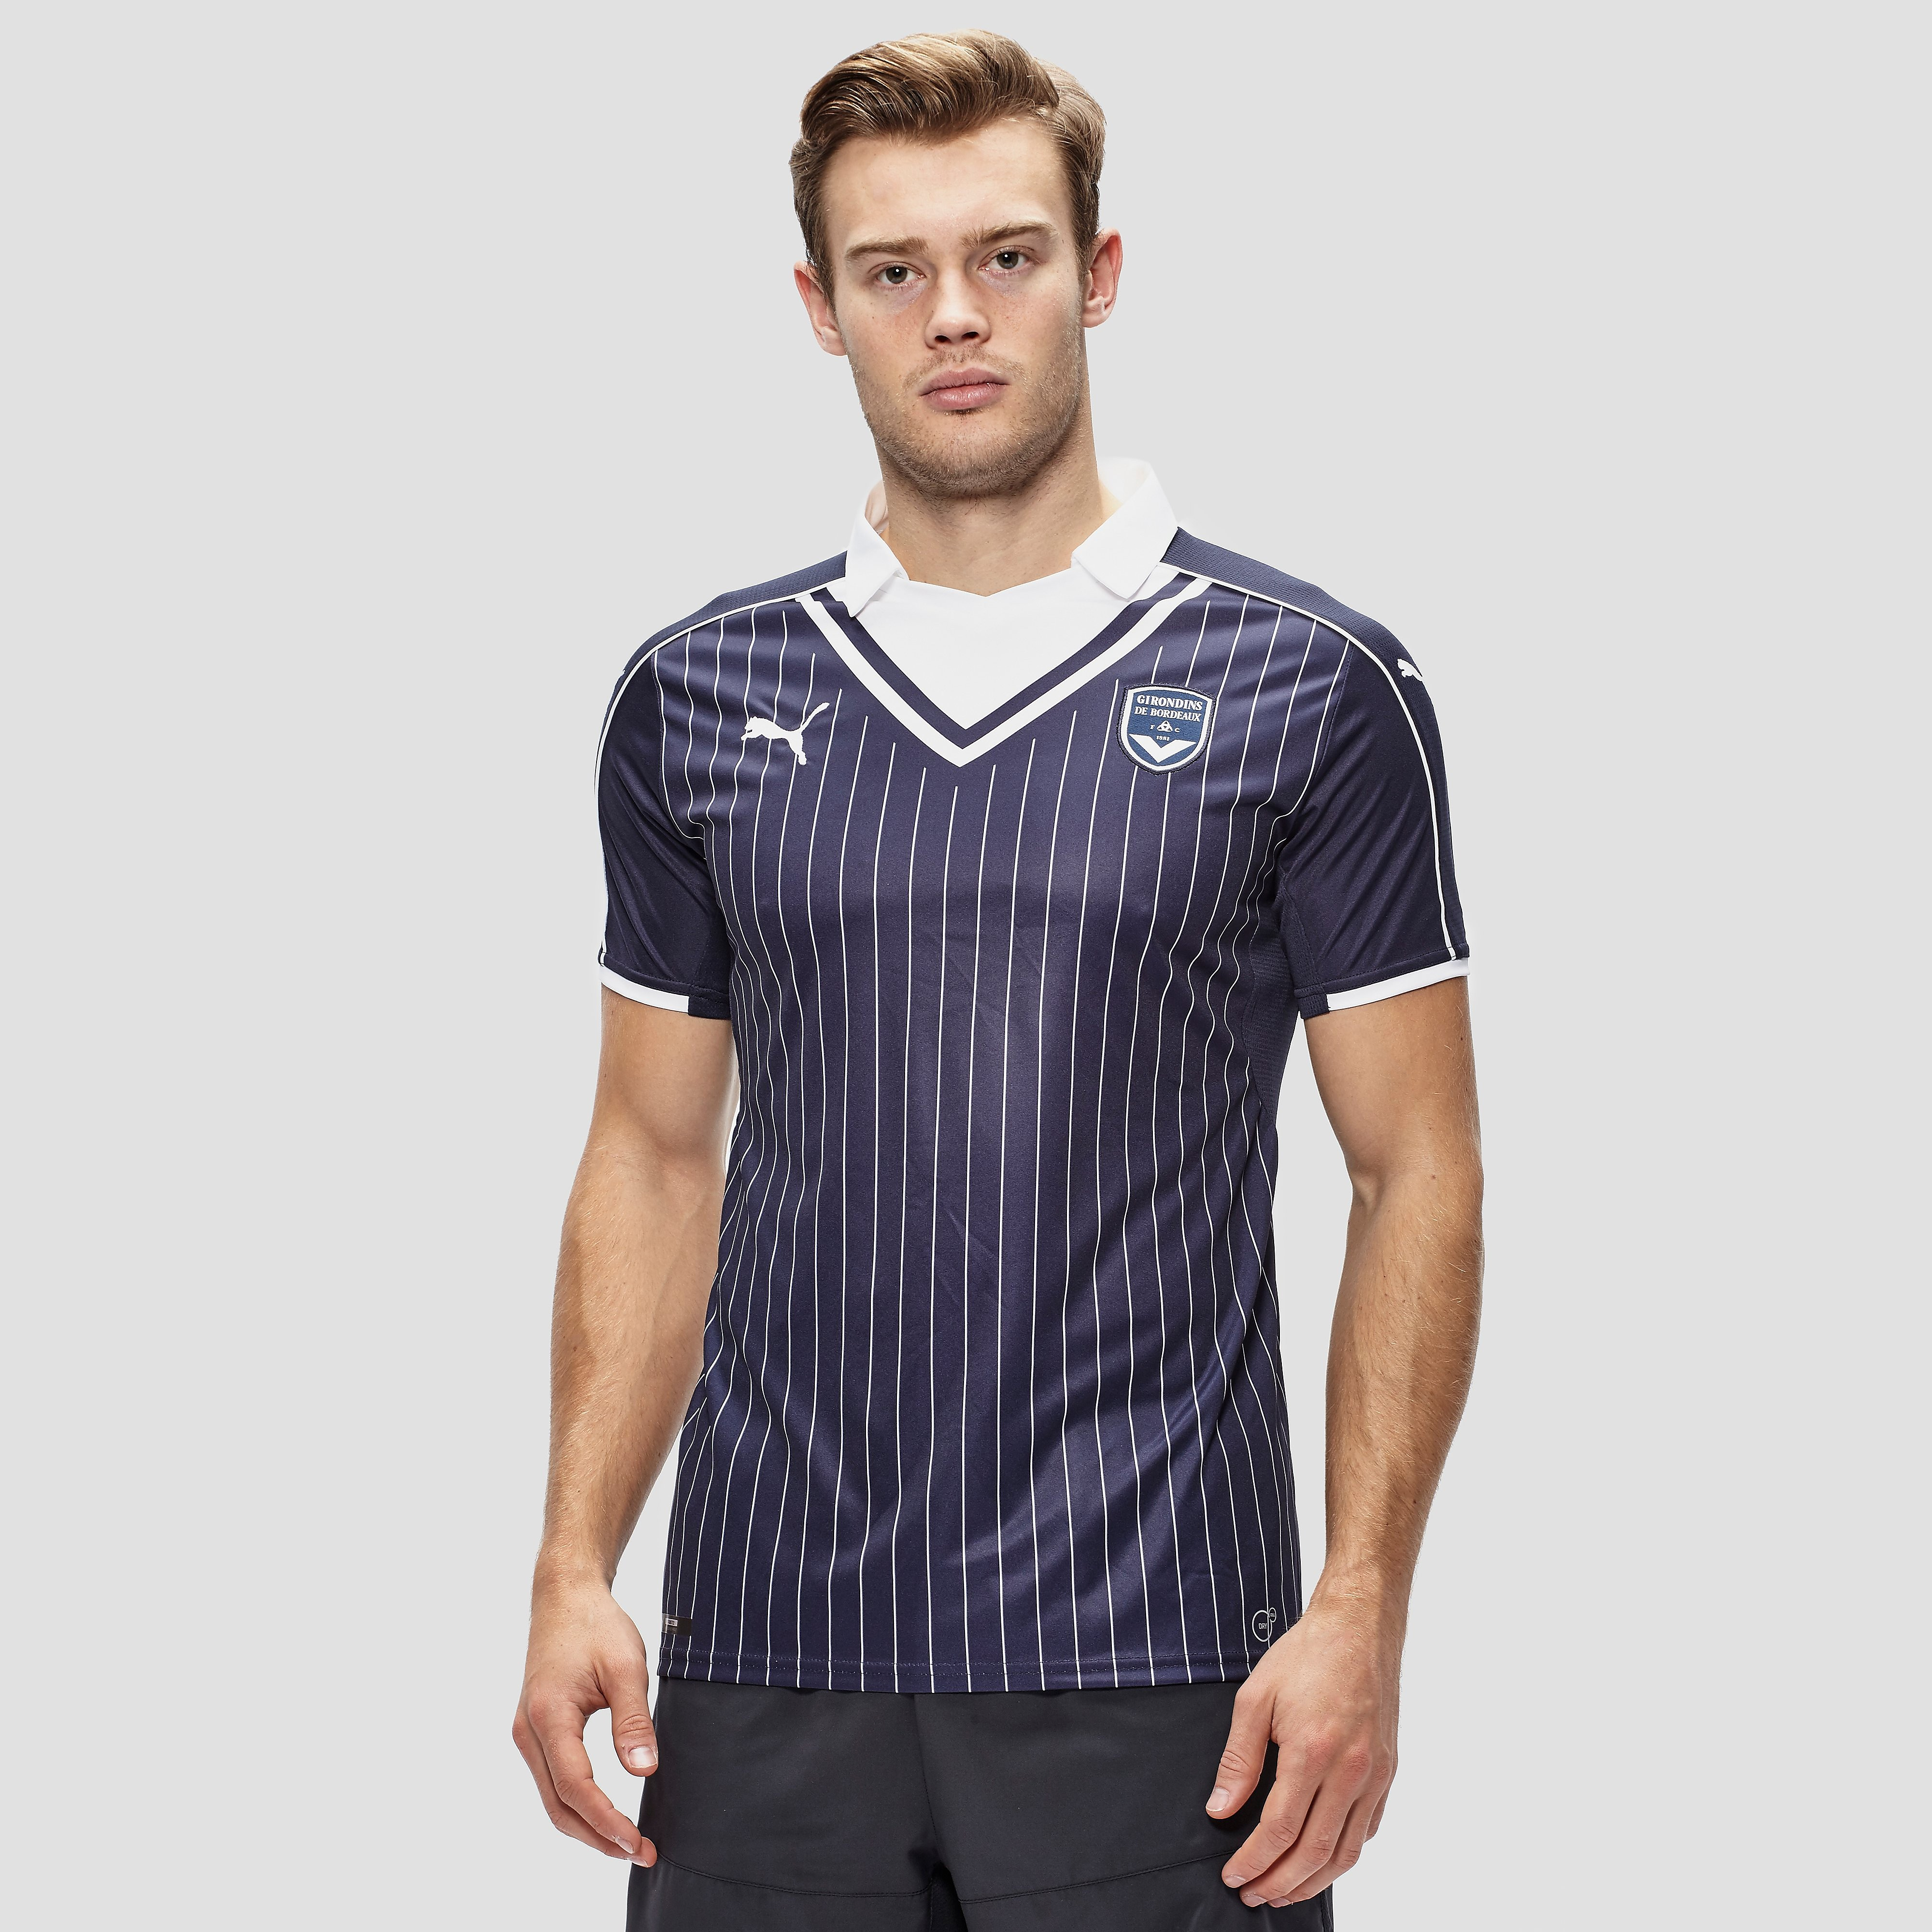 PUMA FC Girondins de Bordeaux 2016/17 Home Men's Shirt